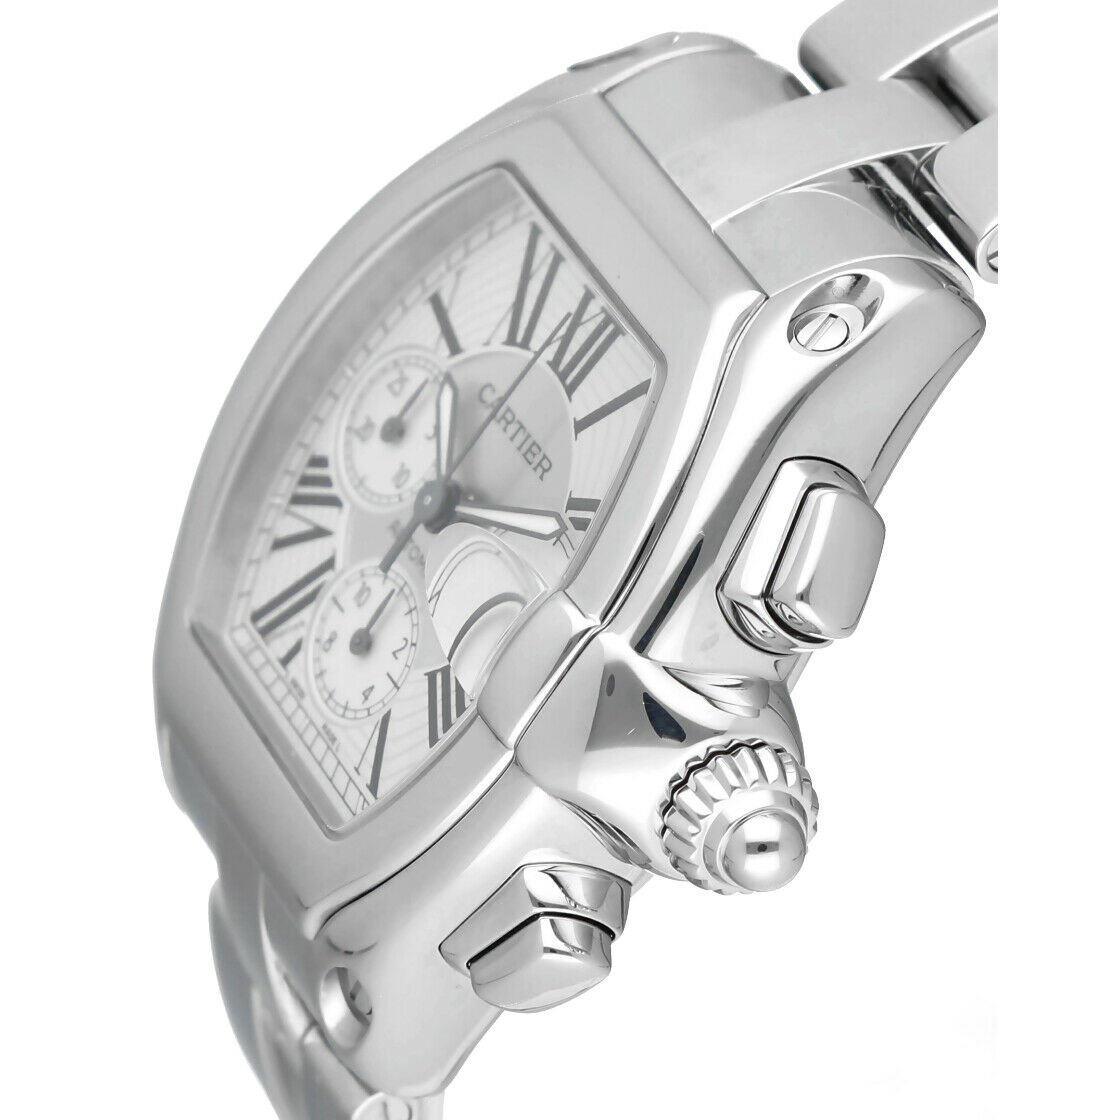 Cartier Roadster 2618 Chronograph XL Silver Dial Stainless Steel Mens Watch 114339442665 3